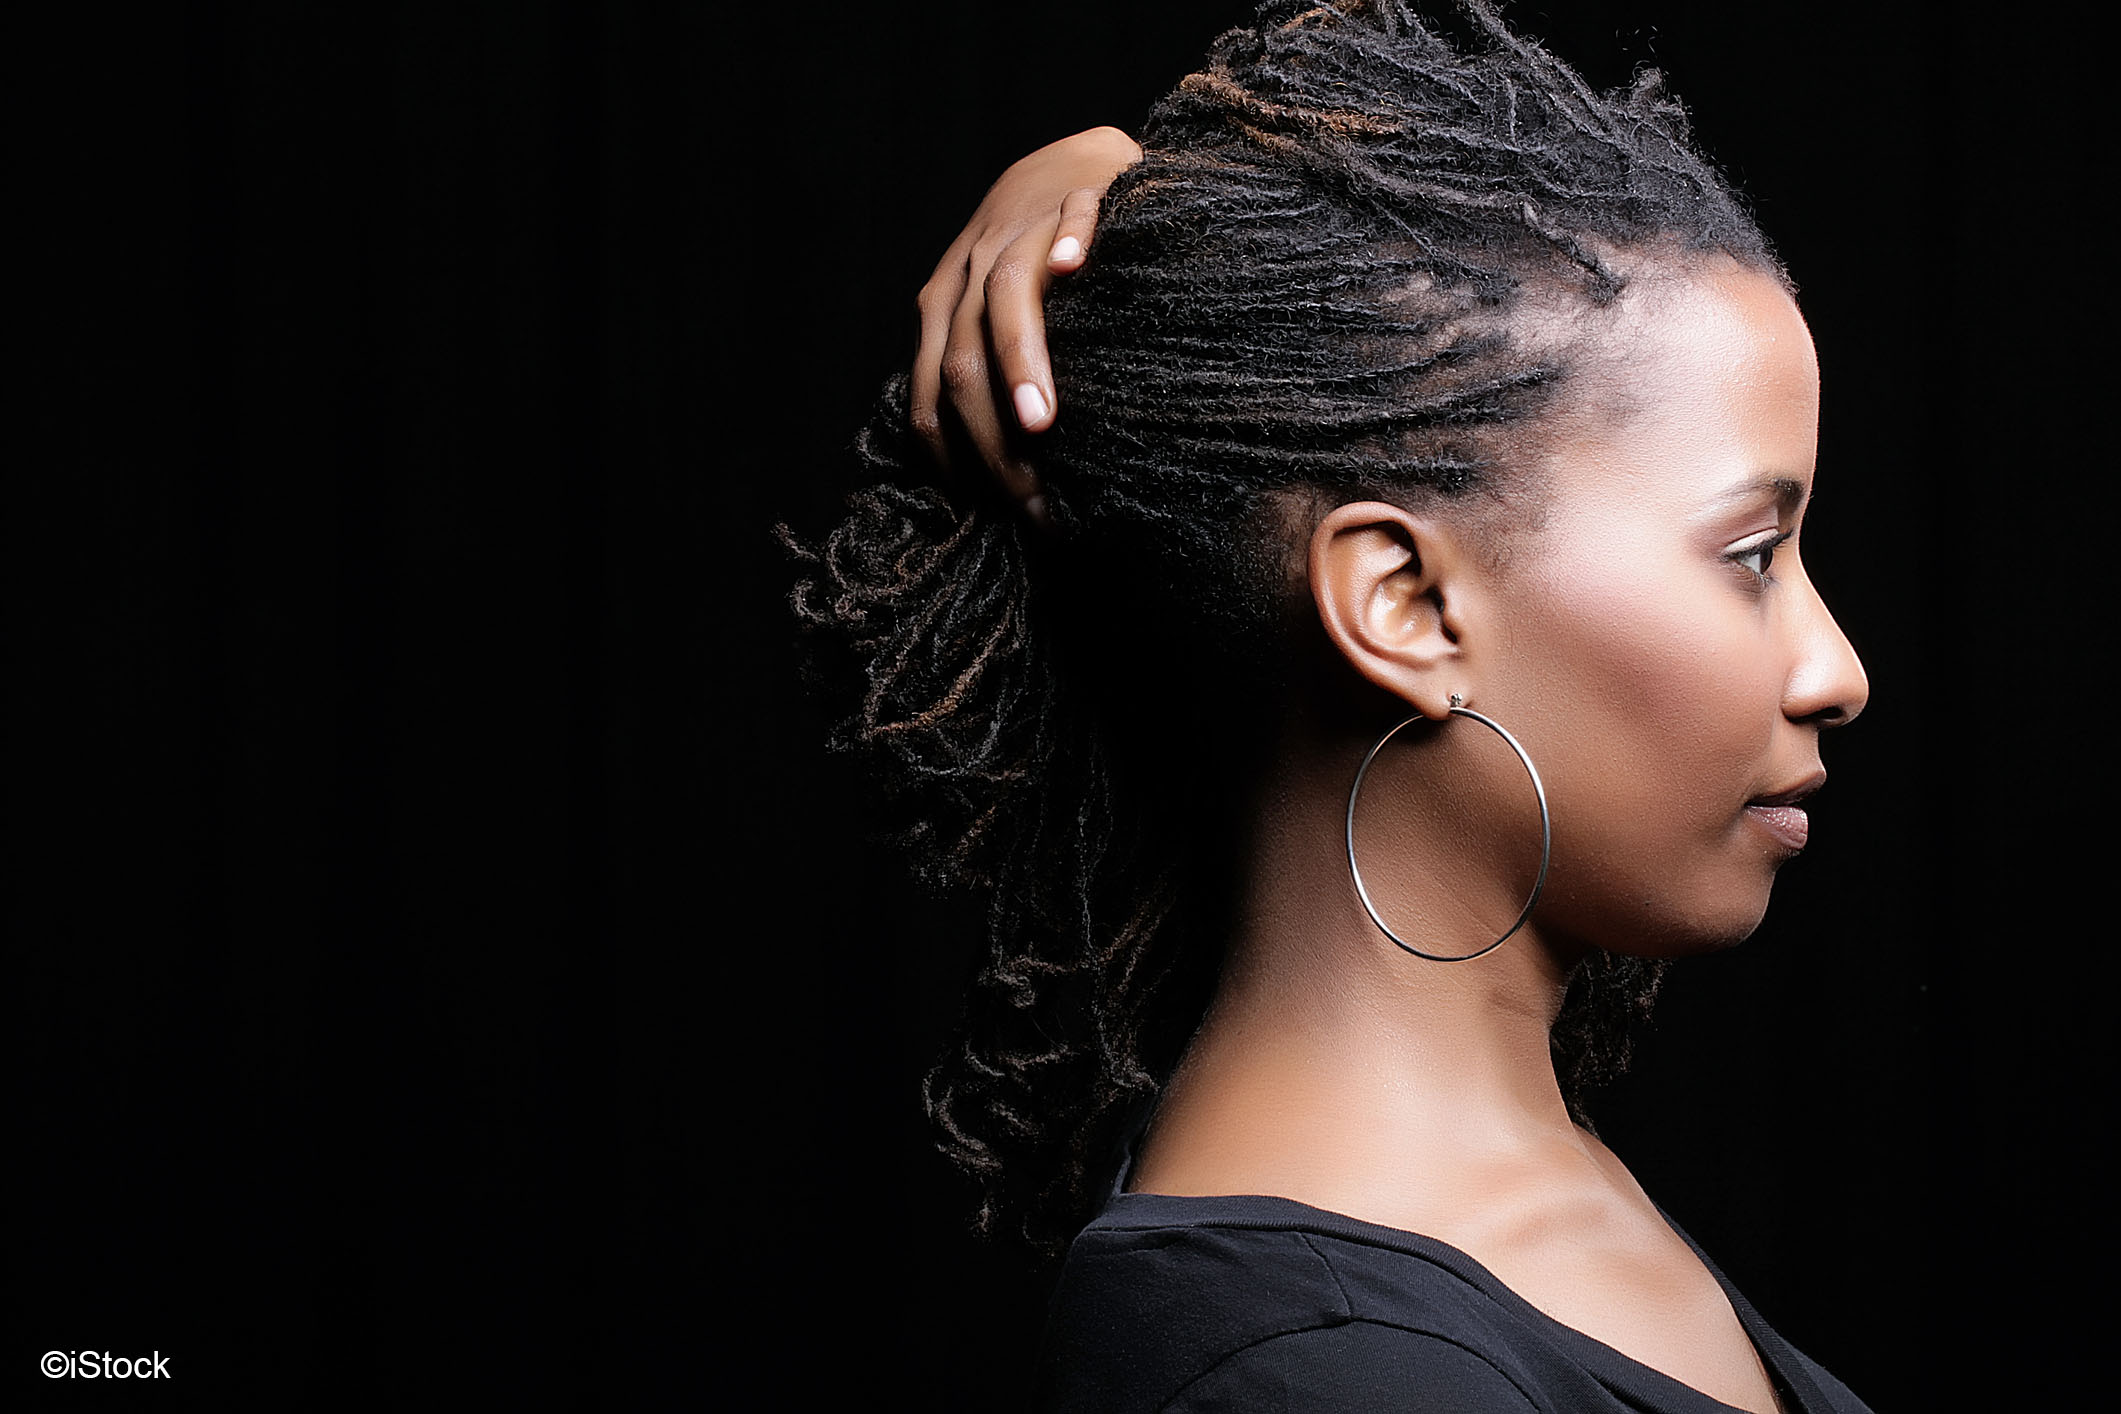 Les Sisterlocks, on tente ? - Niwel Beauty